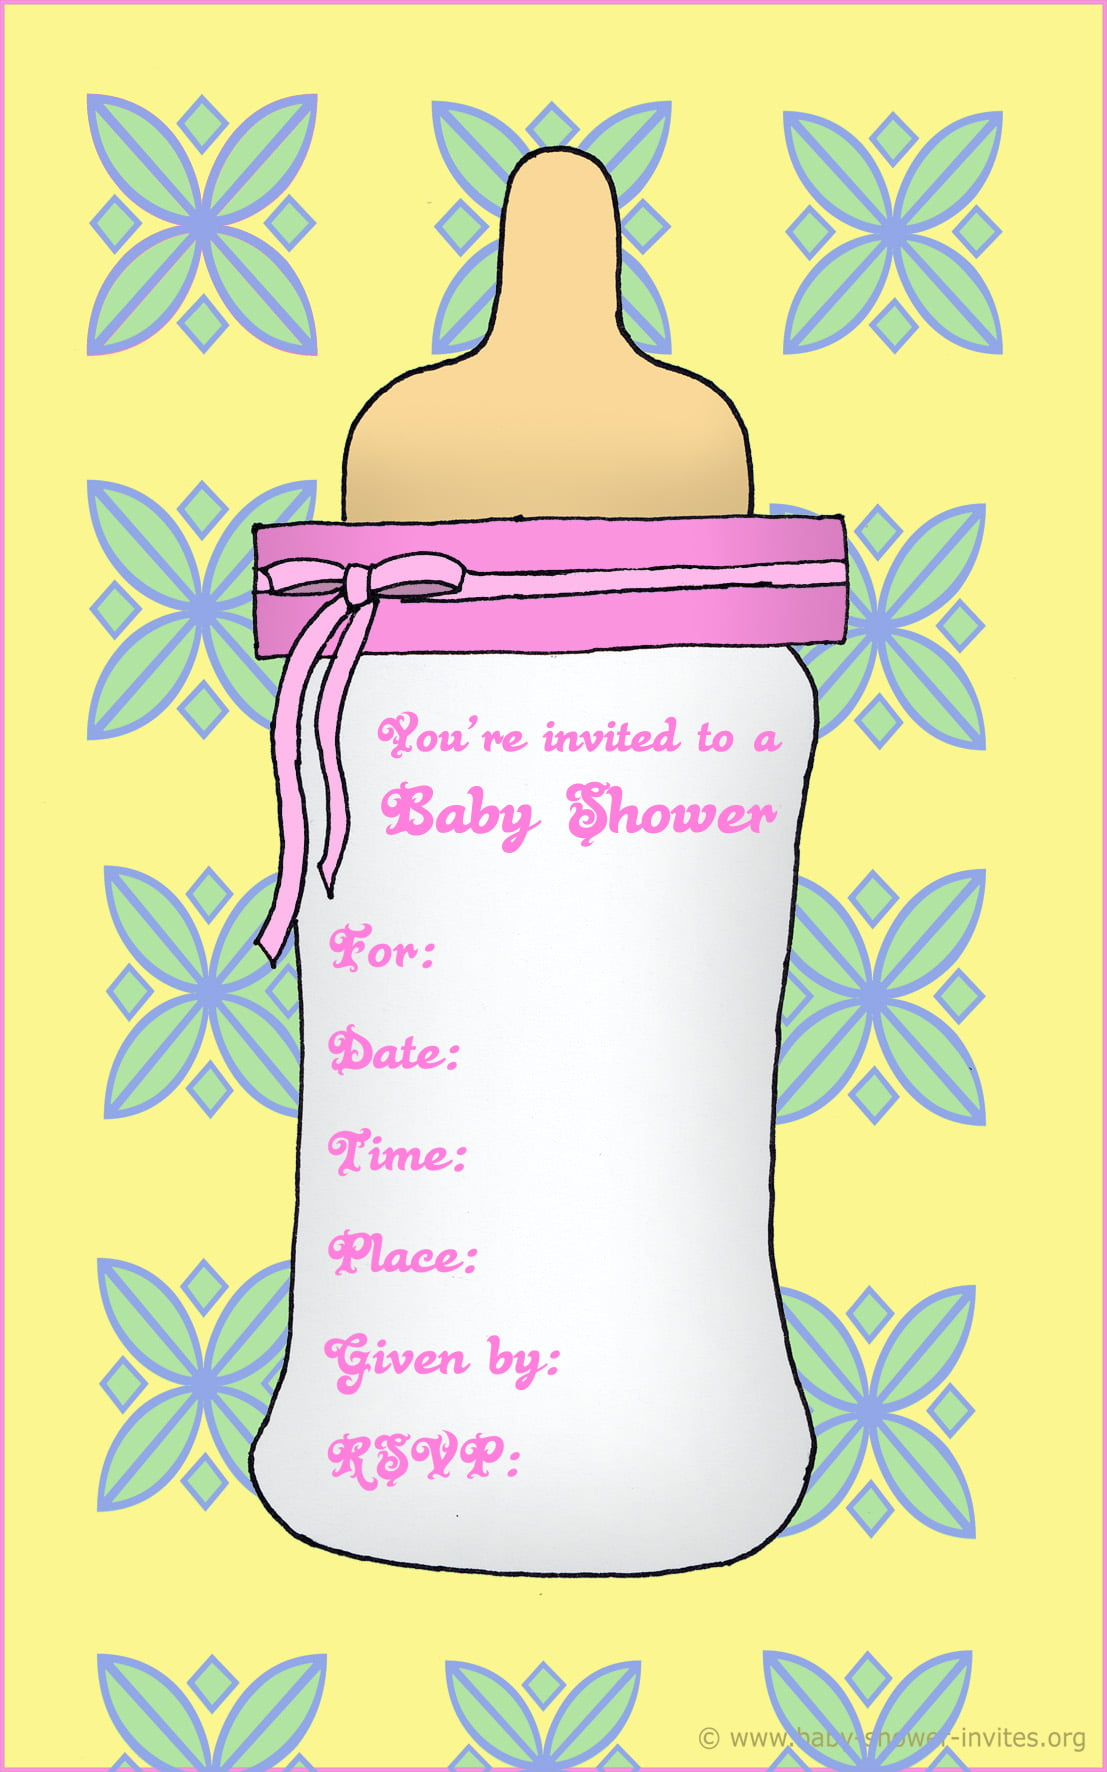 Free Printable Baby Bottle Baby Shower Invitation Template FREE - Baby shower invitations templates download free